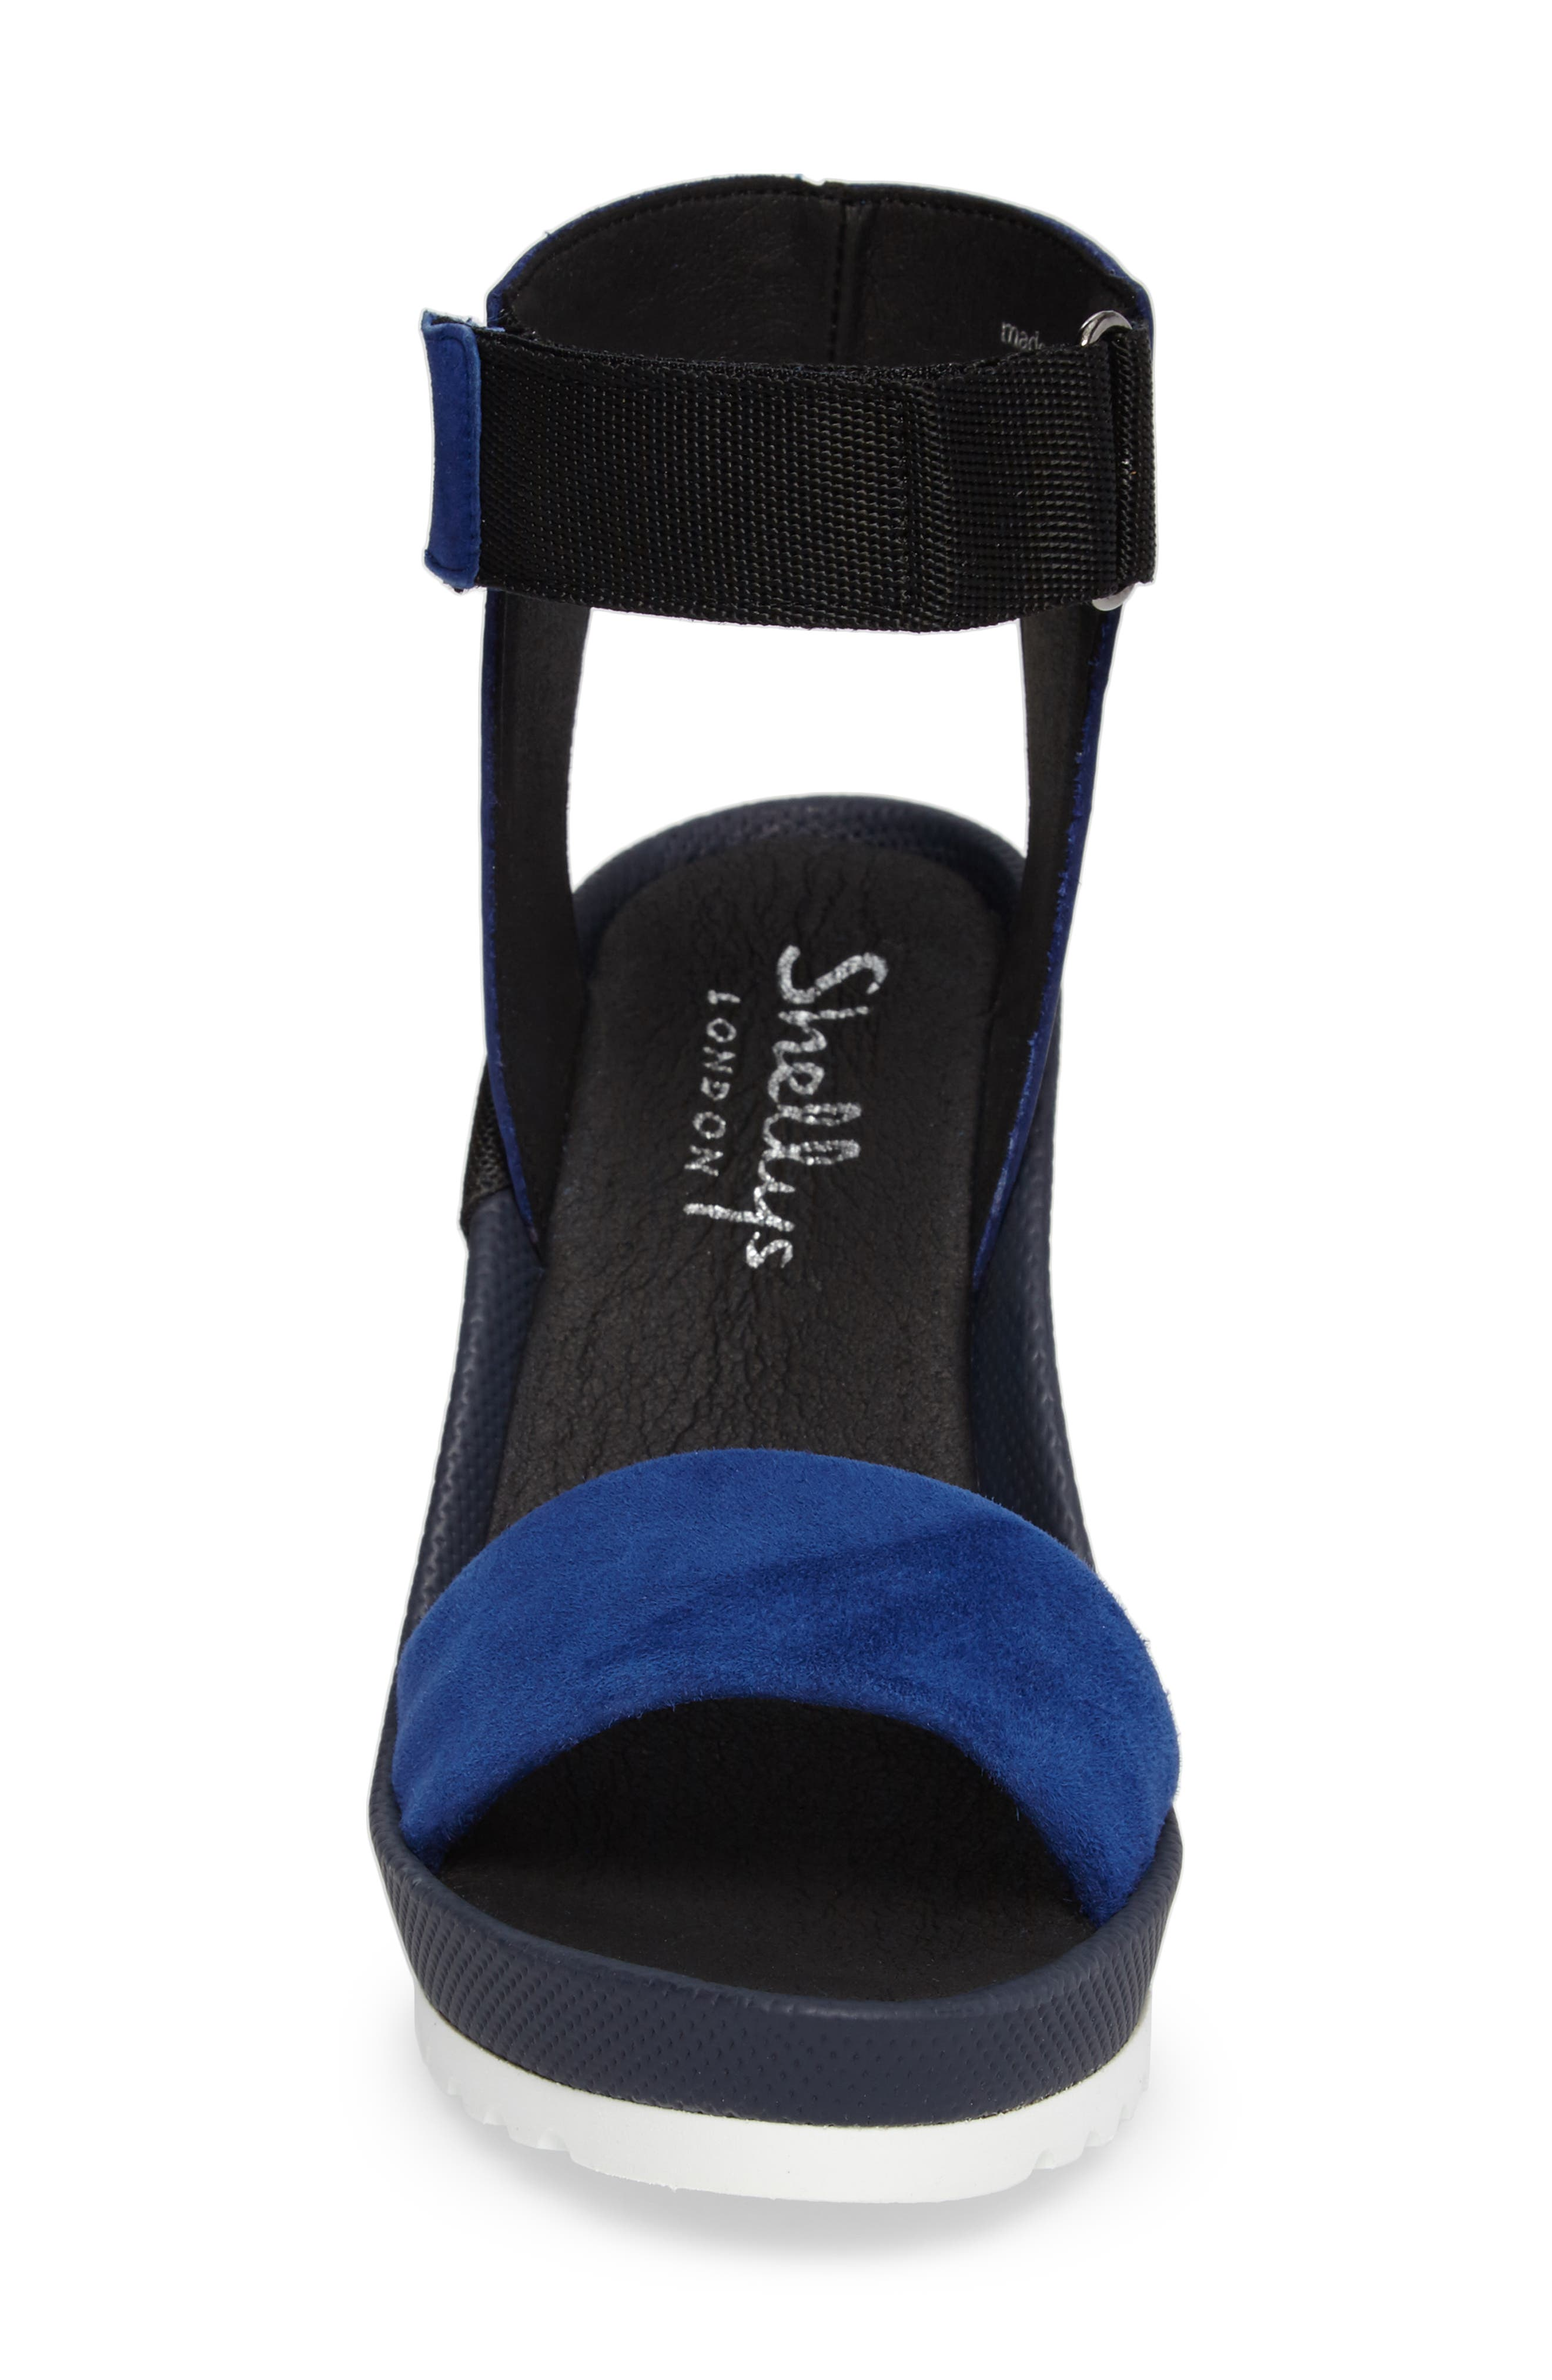 Kayleigh Wedge Sandal,                             Alternate thumbnail 4, color,                             Blue Multi Suede